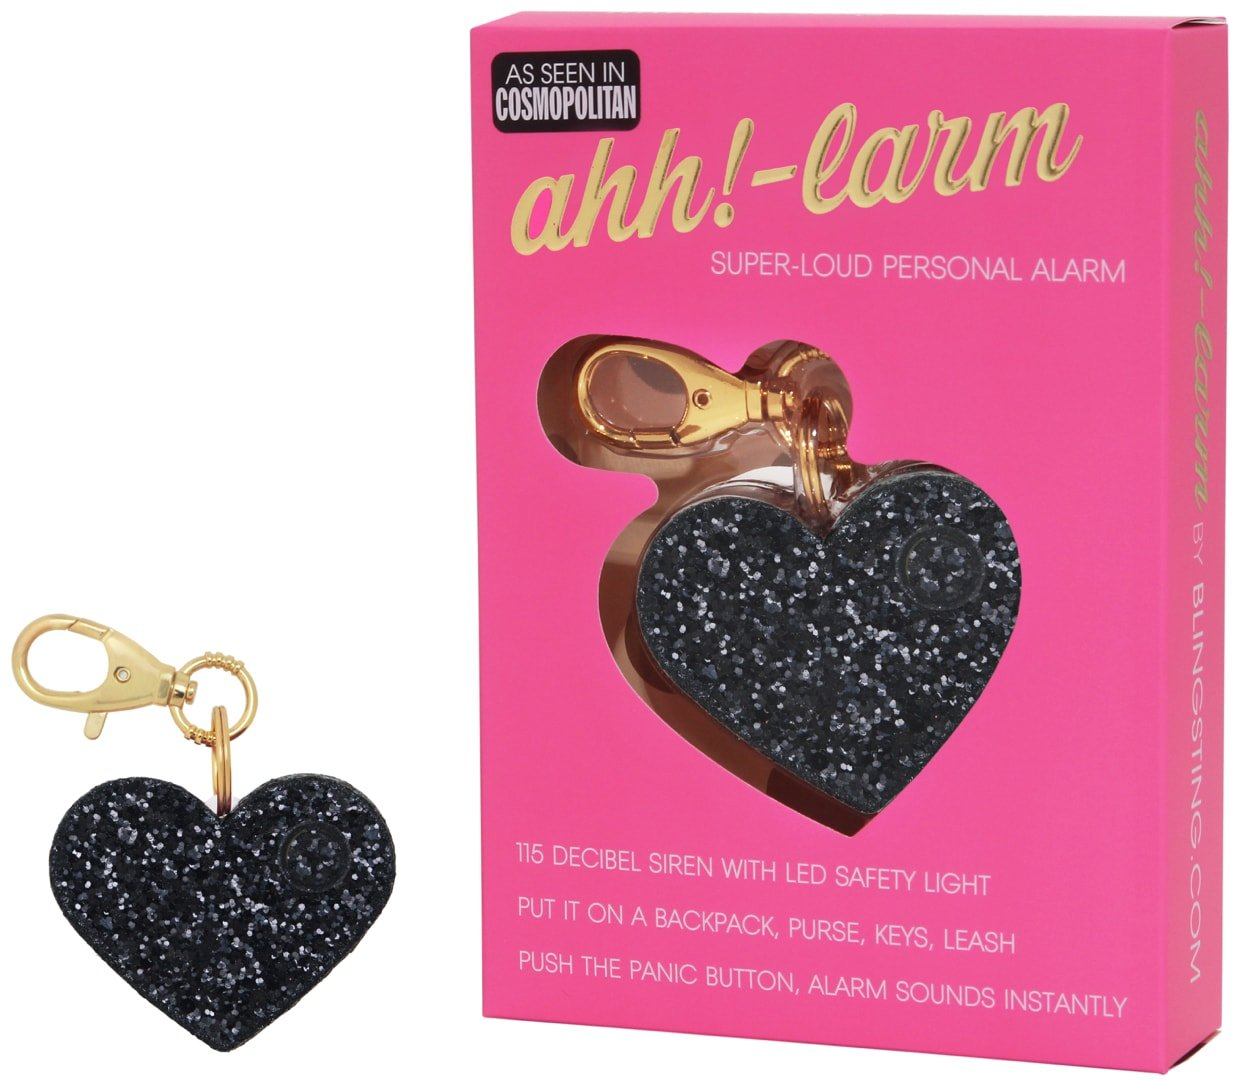 BLINGSTING Ahh!-Larm Emergency Self-Defense Personal Panic Alarm Keychain for Women with LED Safety Light and Clip, Black Glitter Heart